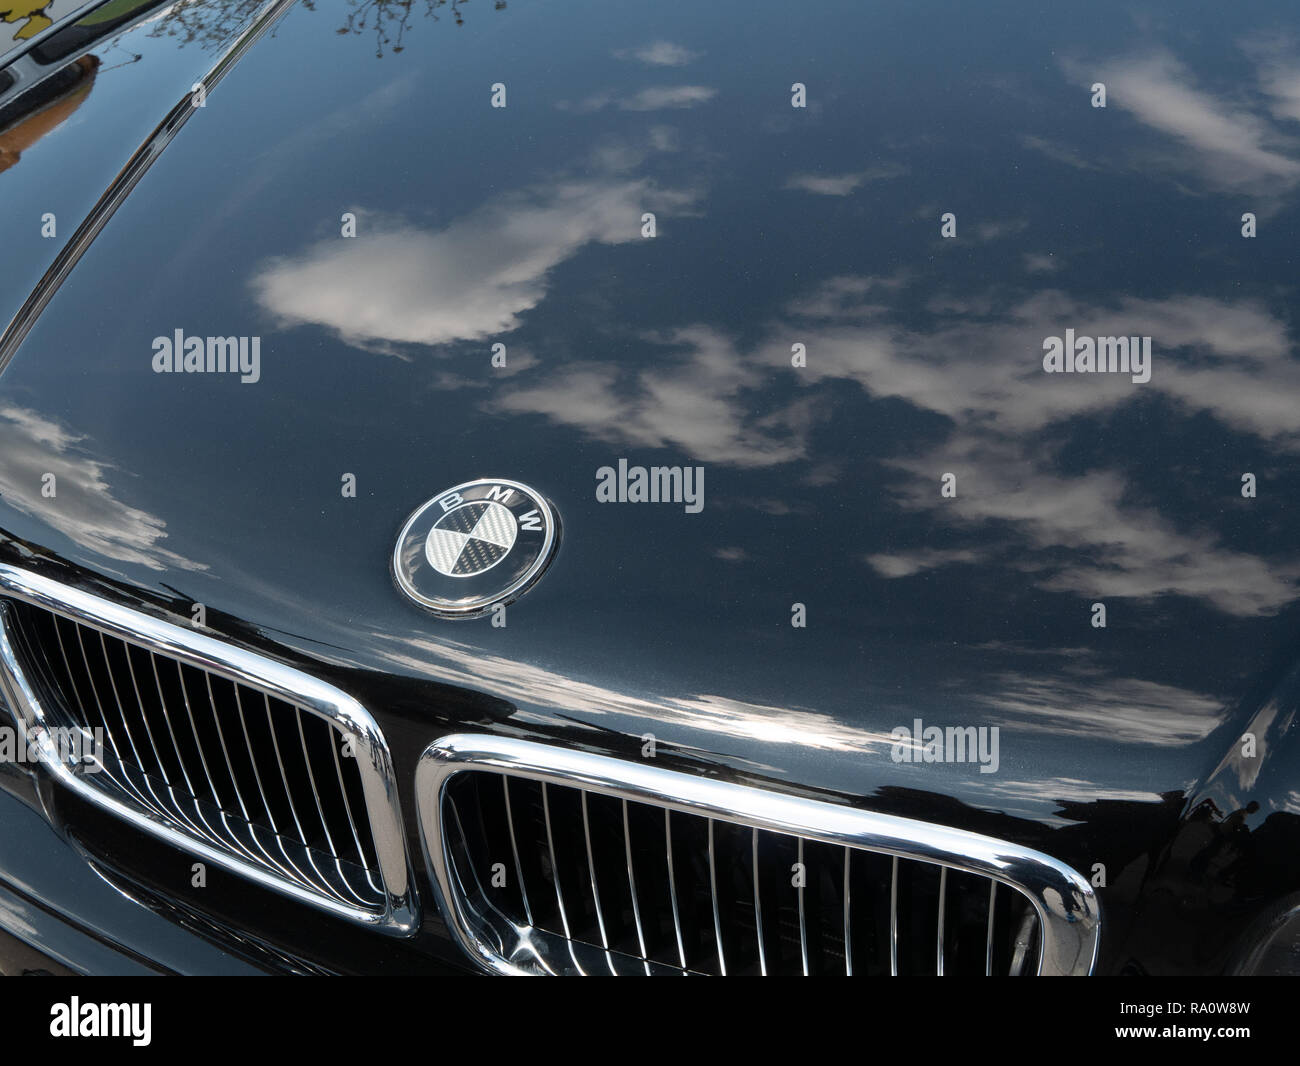 Kyiv Ukraine April 28 2018 View From Top On Bmw Black Polished Shiny Car Hood With Emblem Stock Photo Alamy